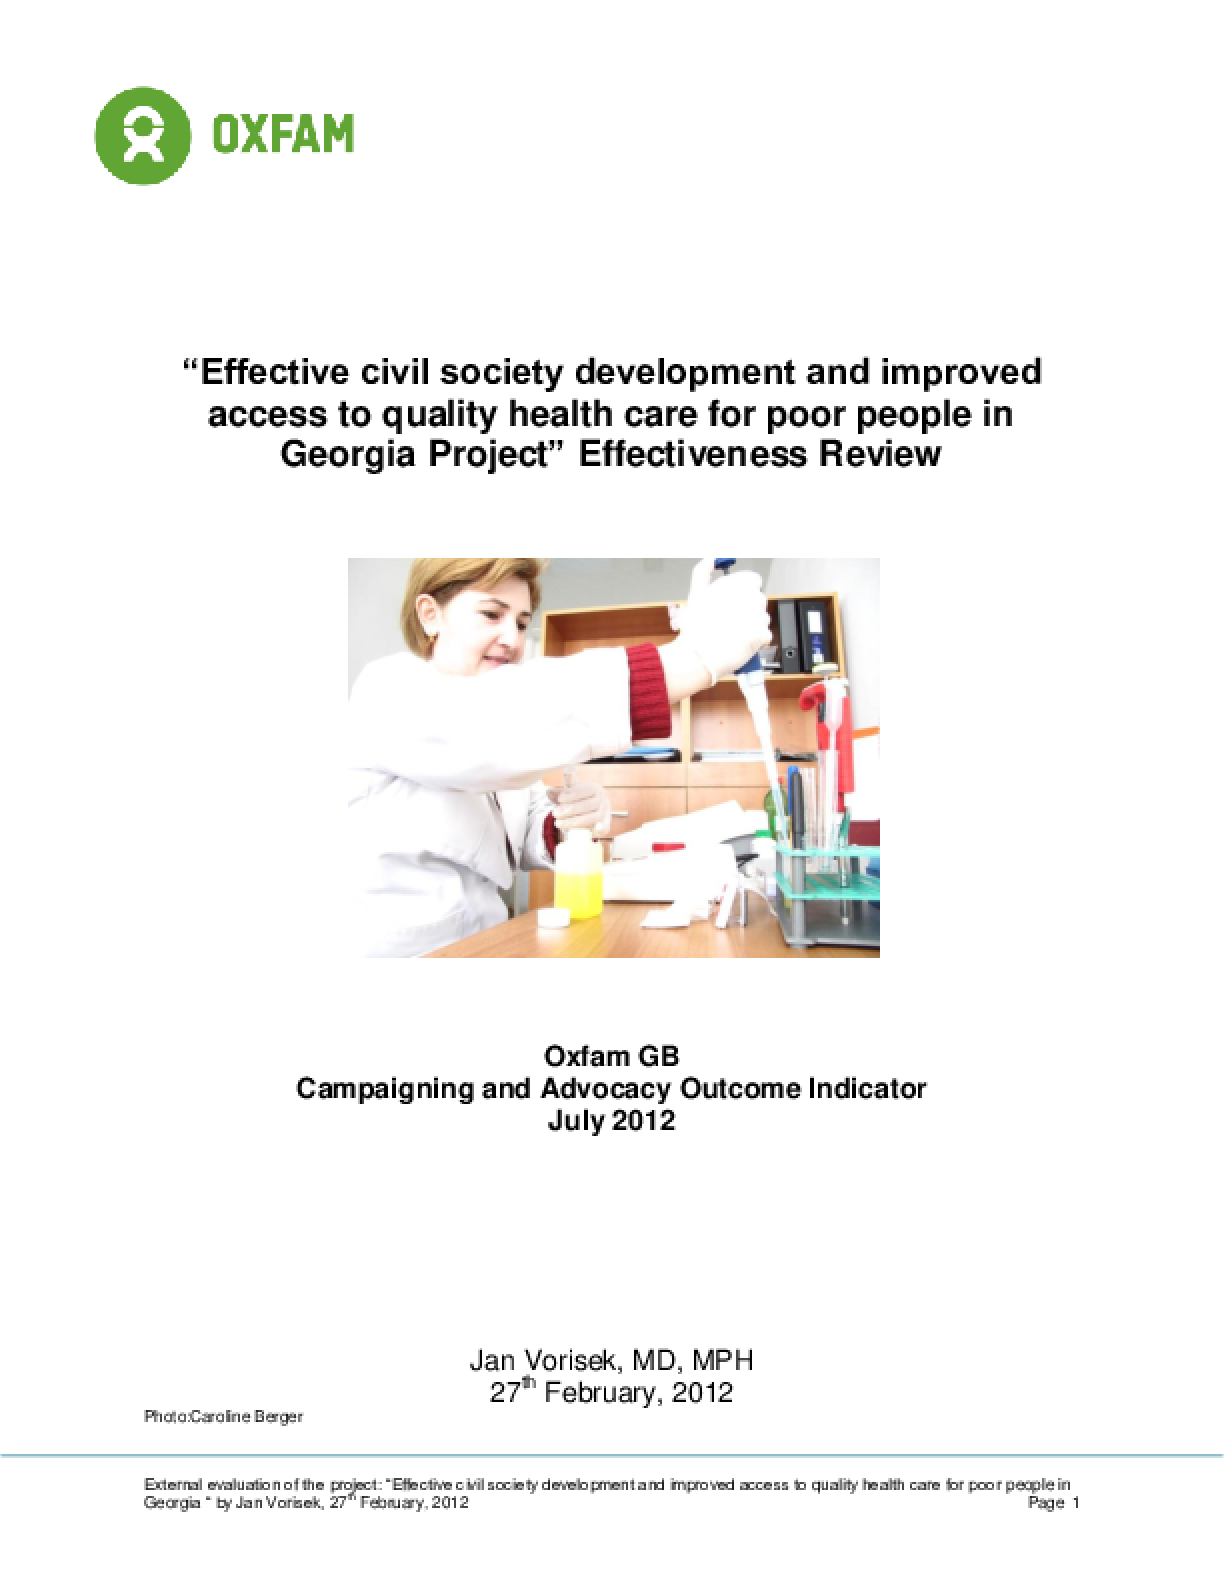 Effectiveness Review: Civil Society Development and Access to Health Care, Georgia